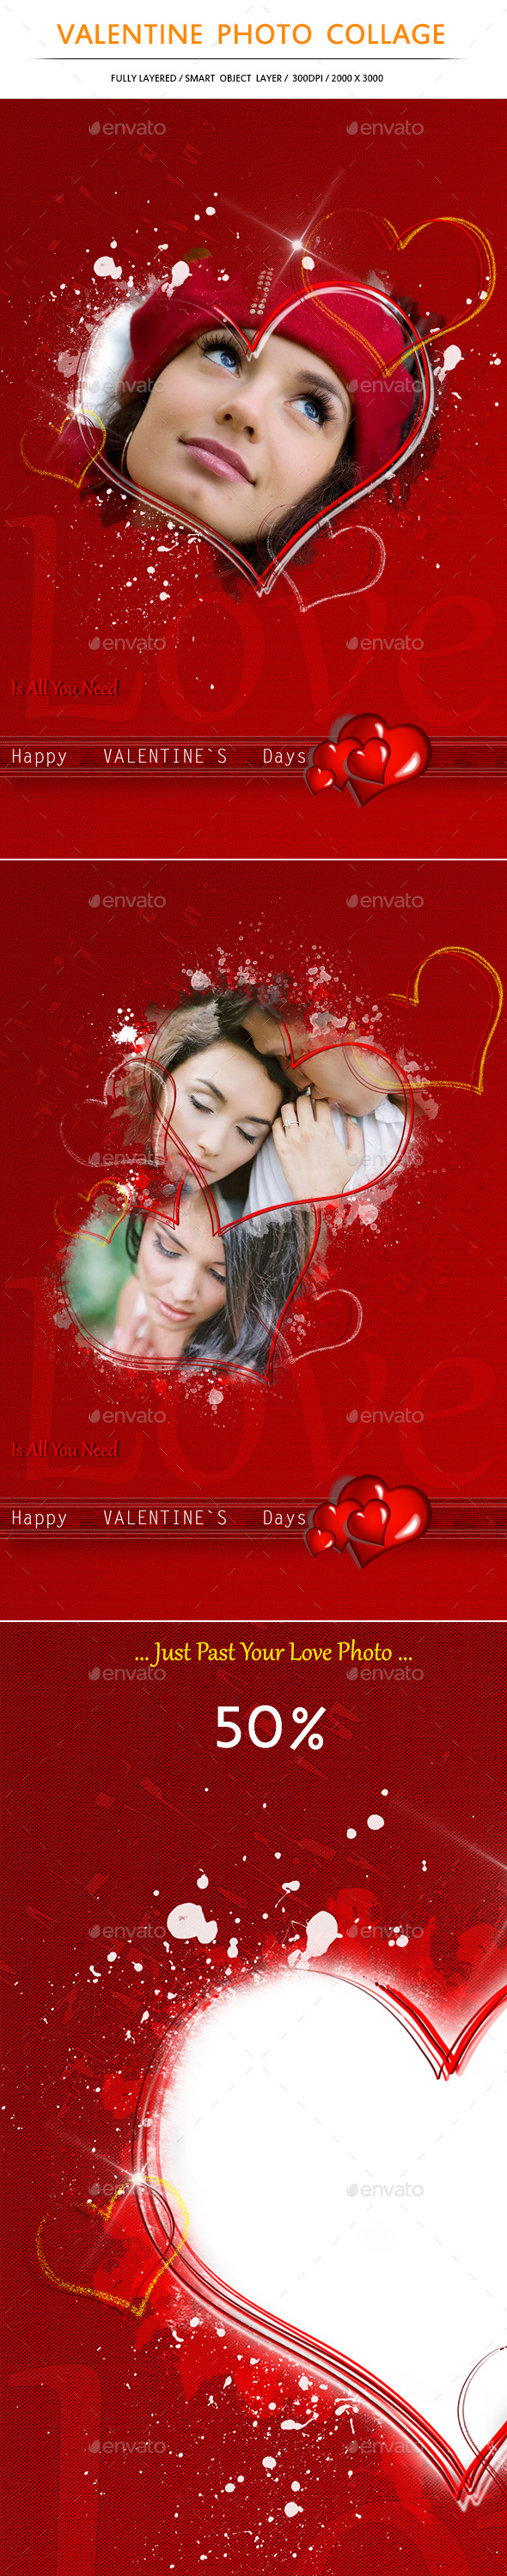 Valentine Photo Collage - Photo Templates Graphics